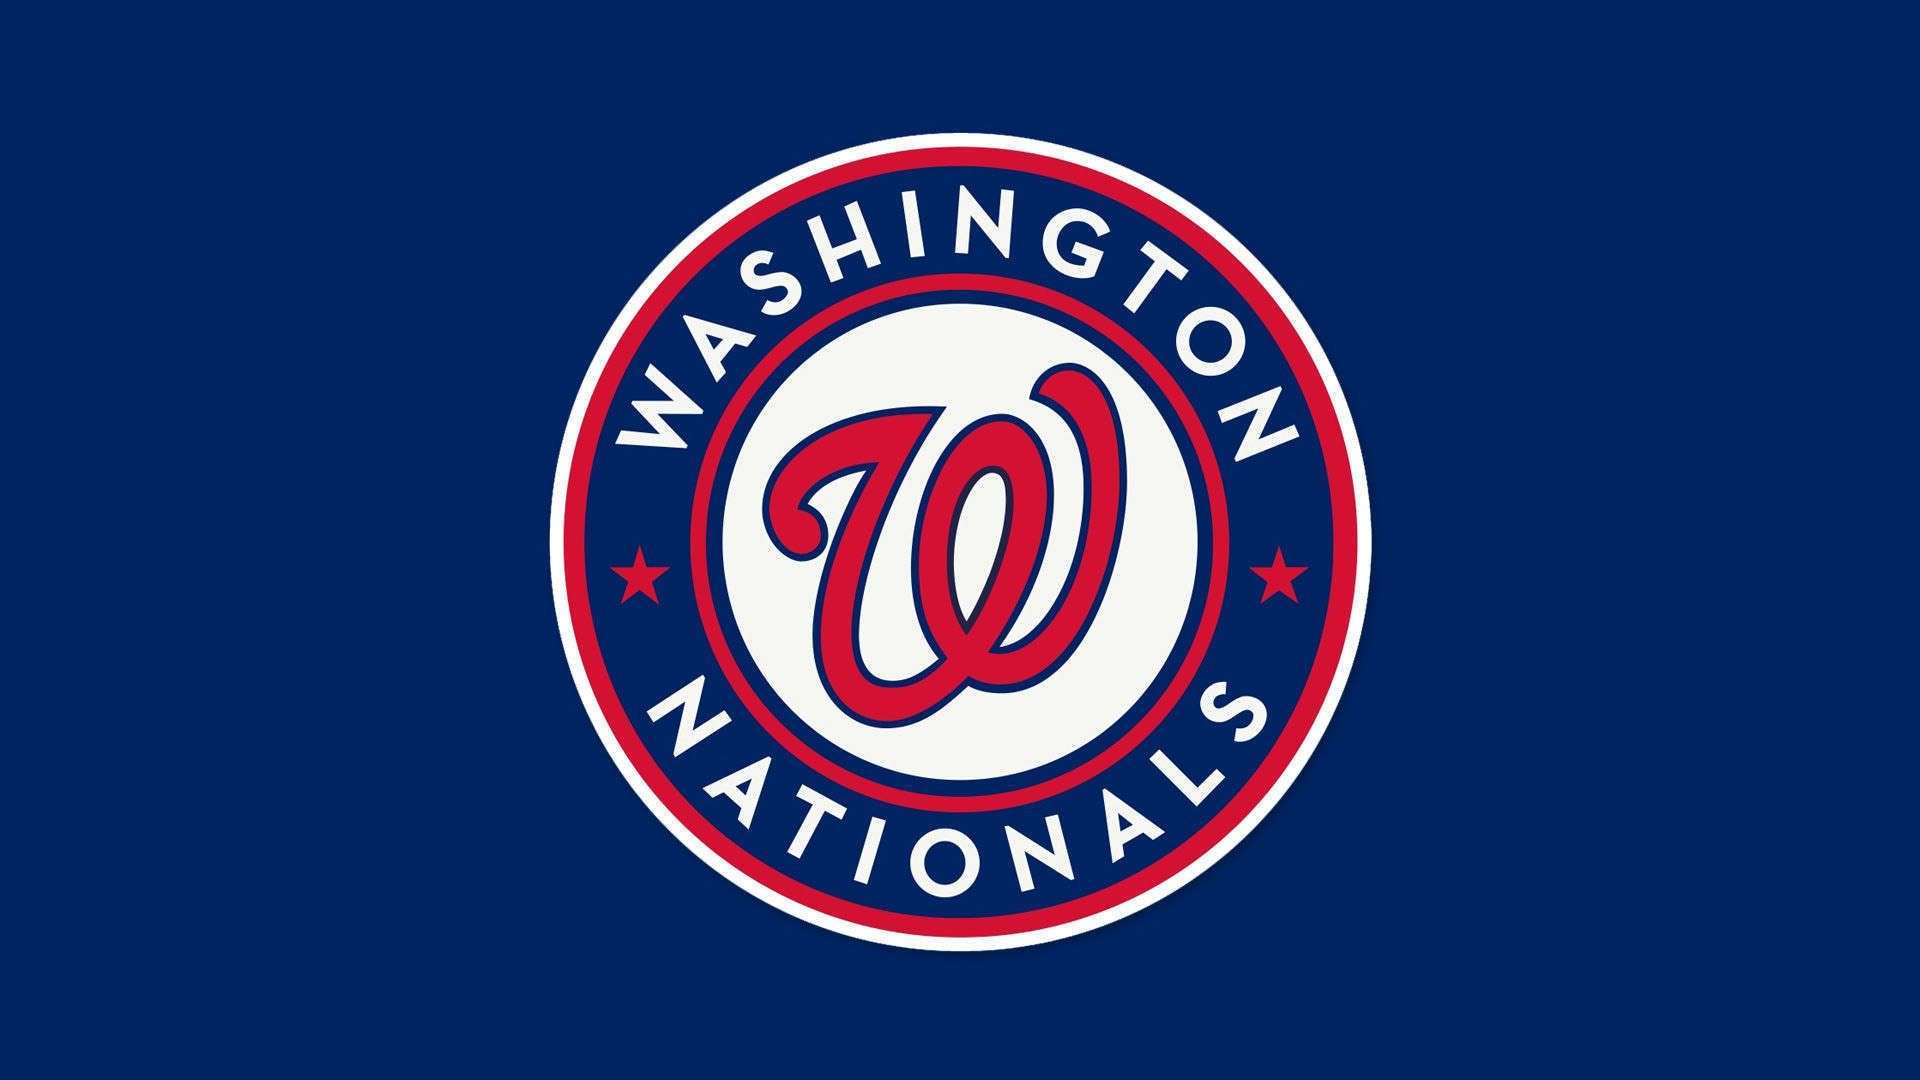 Mark Hd Washington Nationals Baseball Washington Nationals Logo Washington Nationals